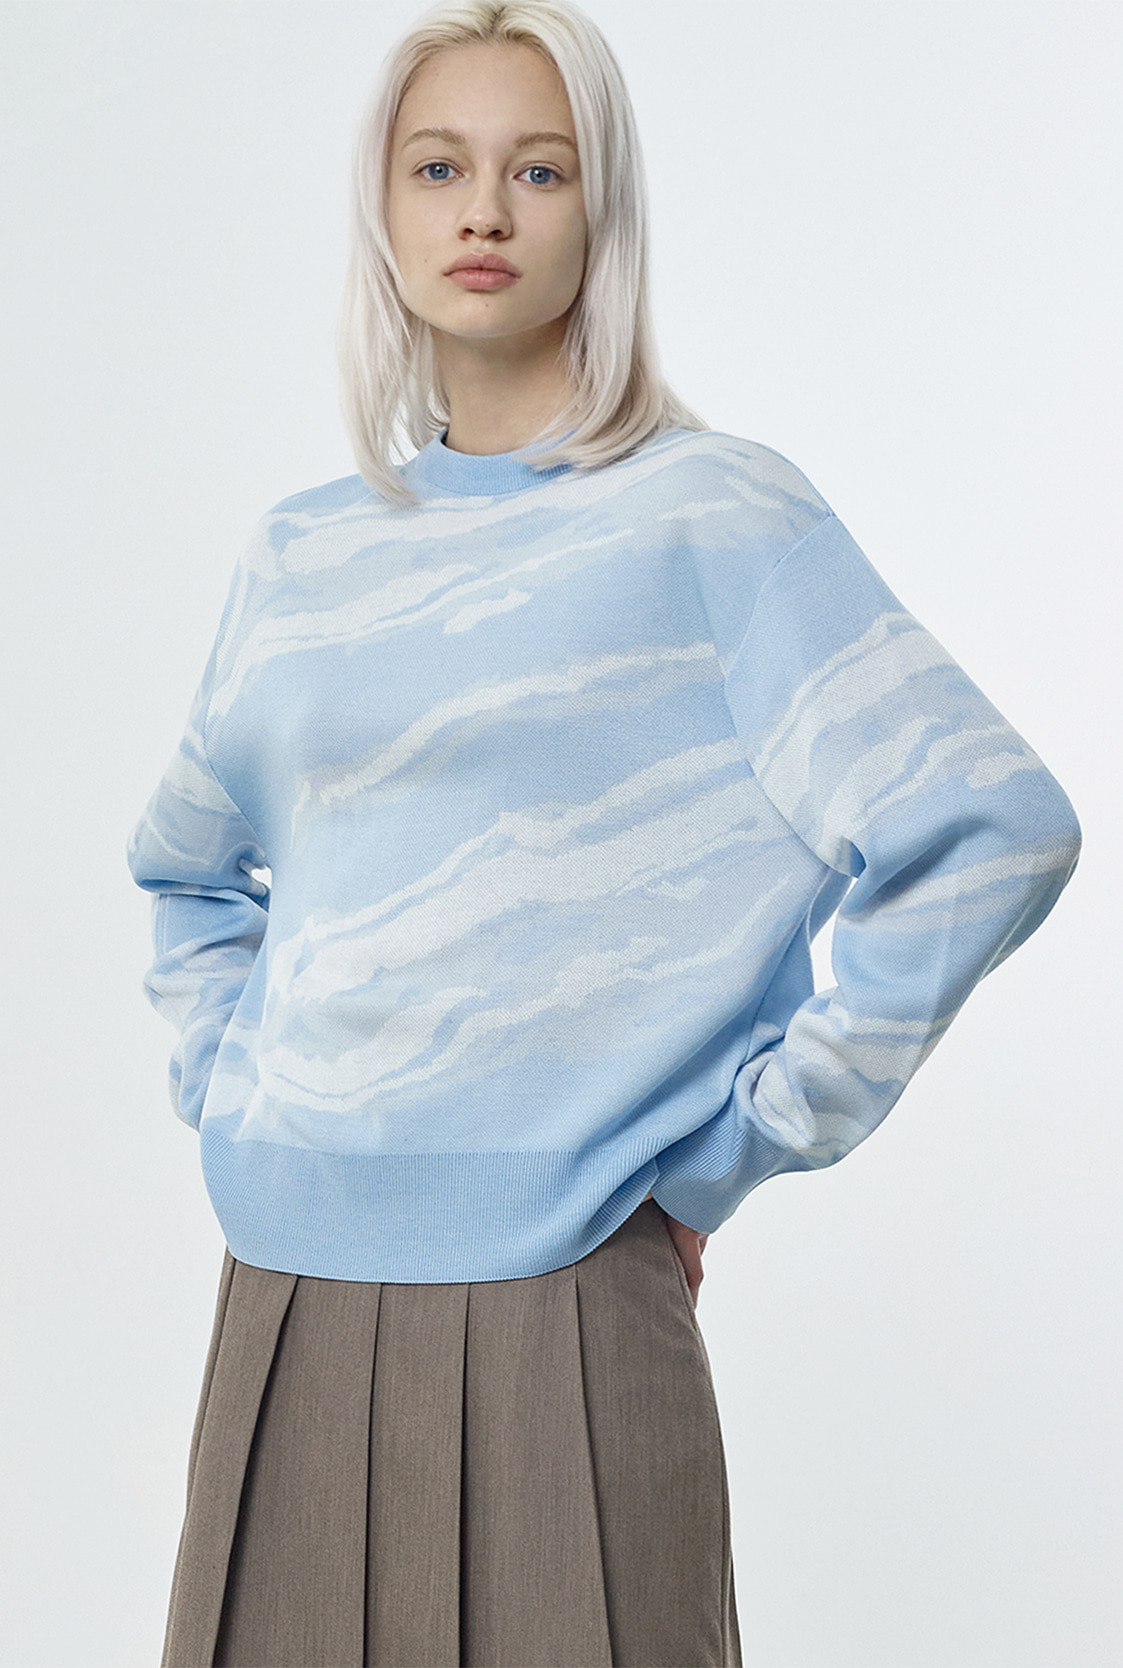 R MARBLE KNIT TOP [2colors]